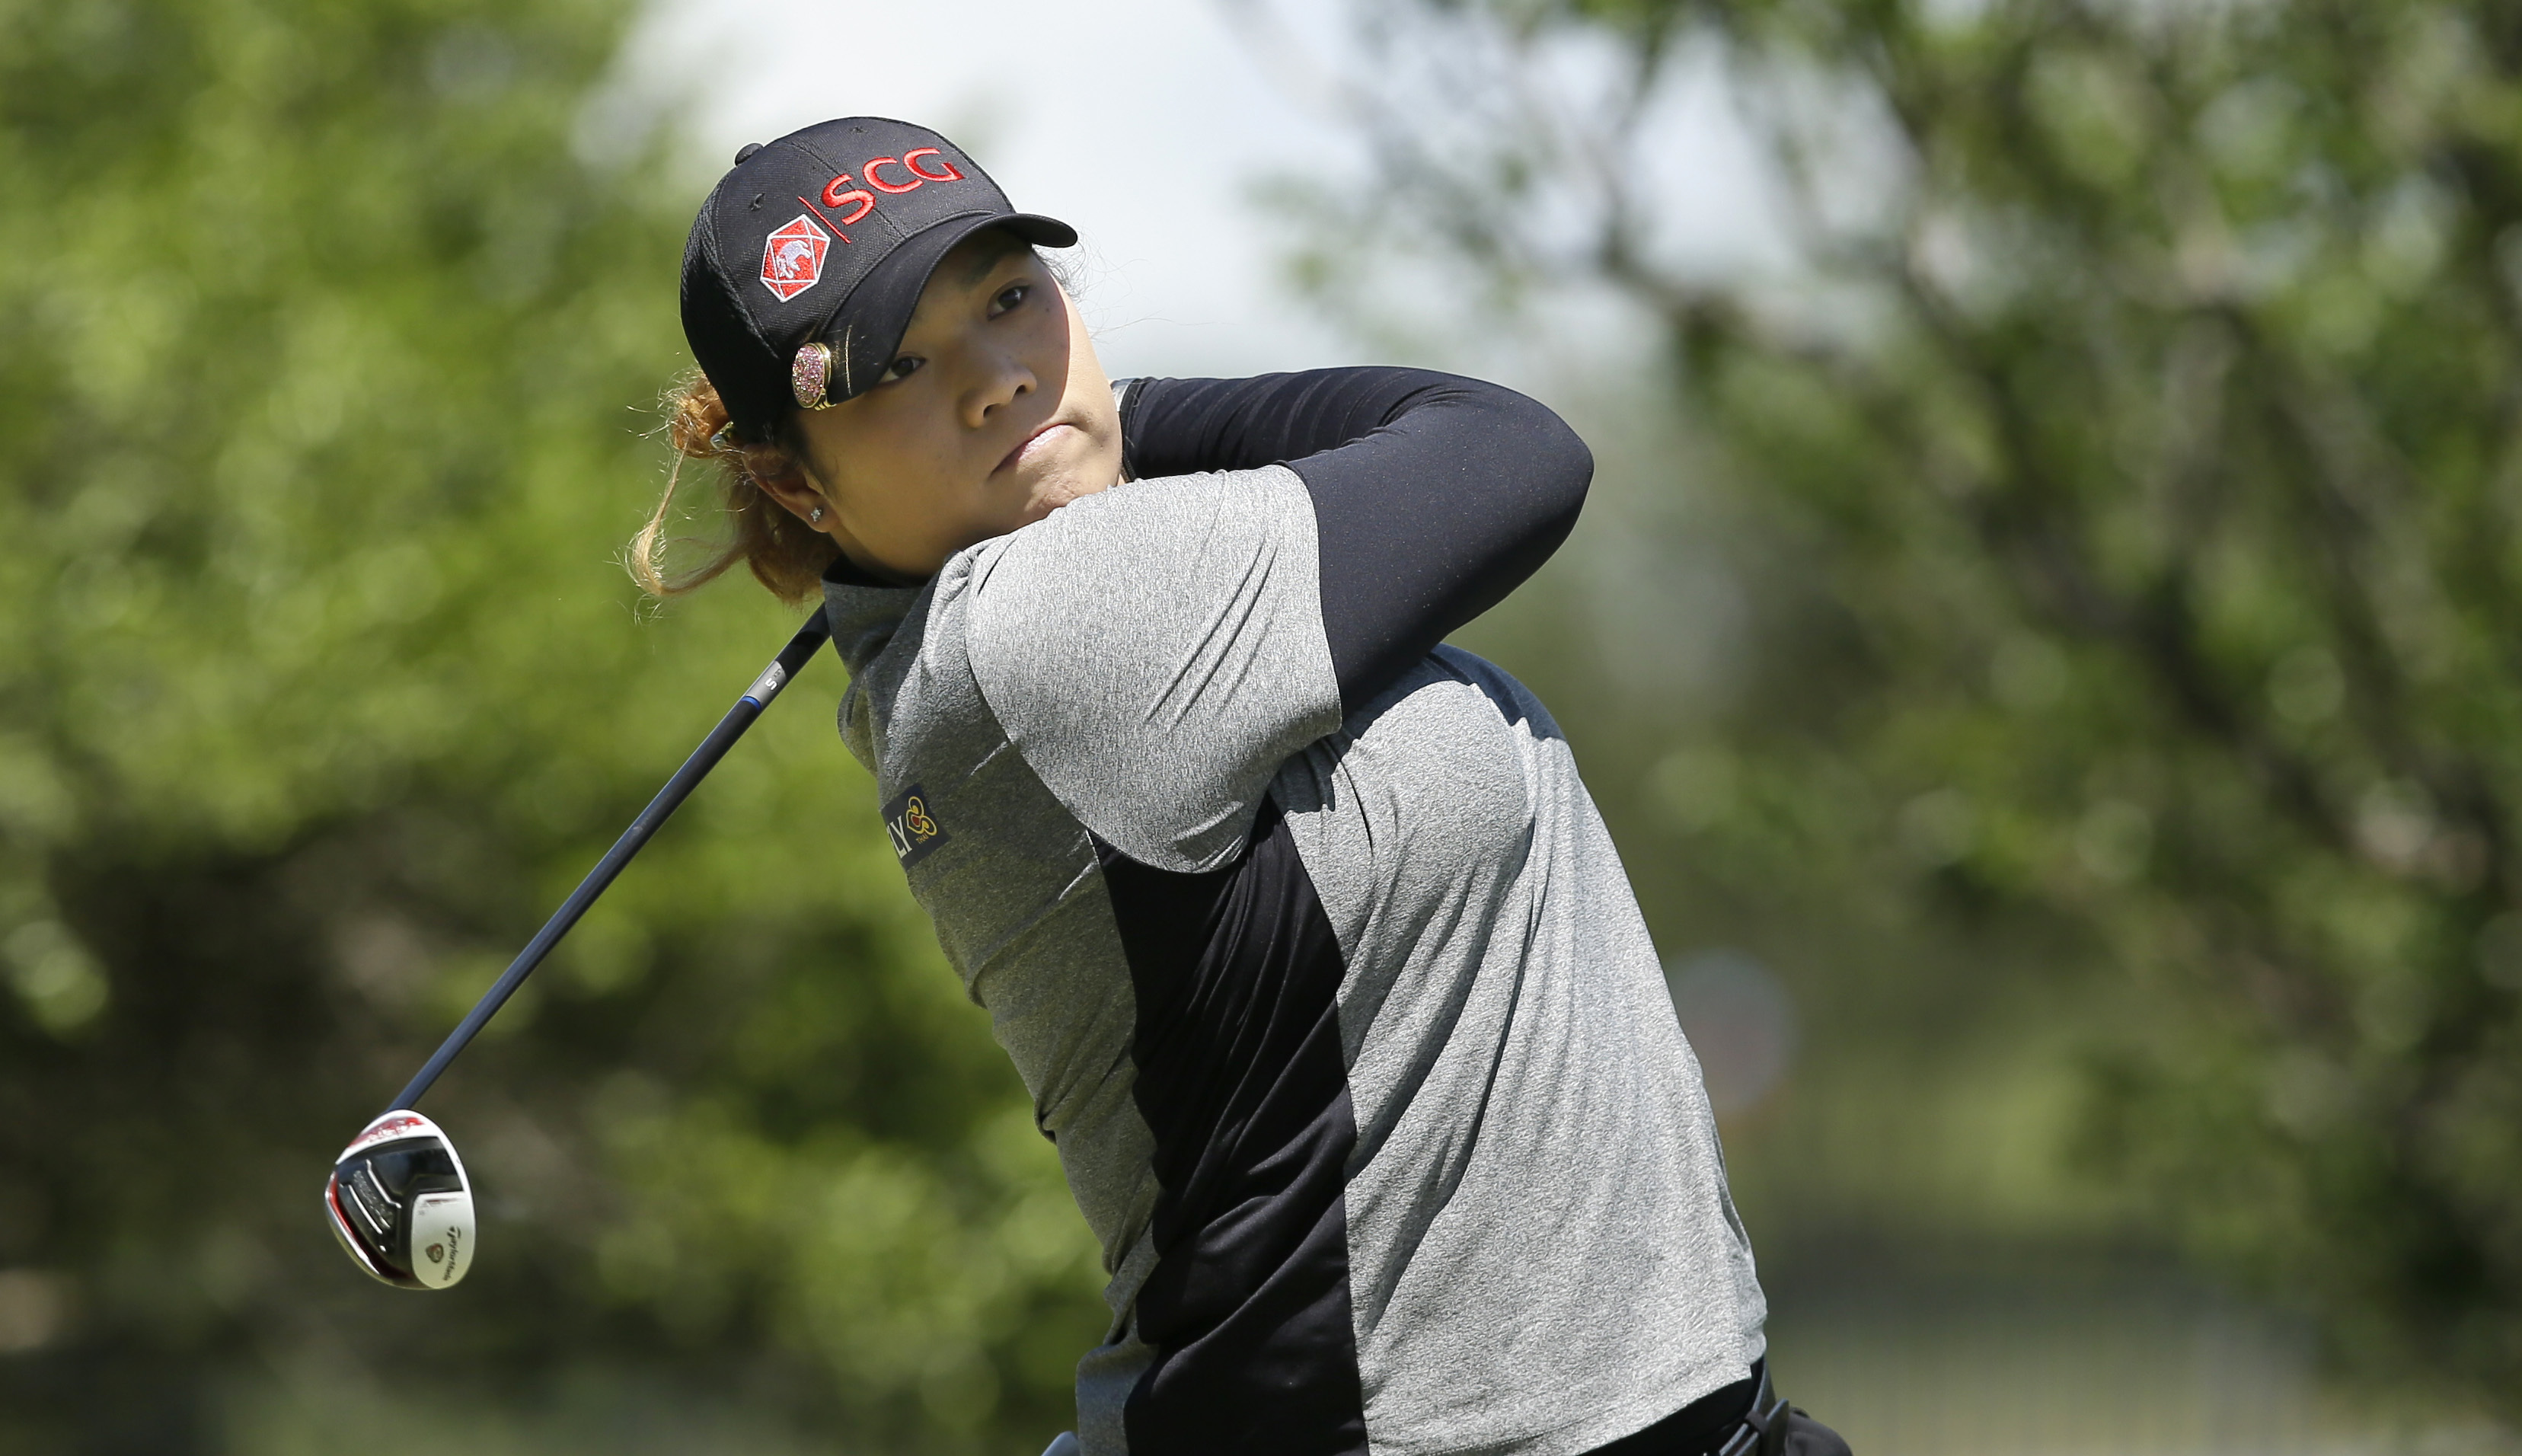 Ariya Jutanugarn of Thailand watches a tee shot during the LPGA Texas Shootout golf tournament in Irving,Texas Sunday, April 30, 2017. (AP Photo/LM Otero)